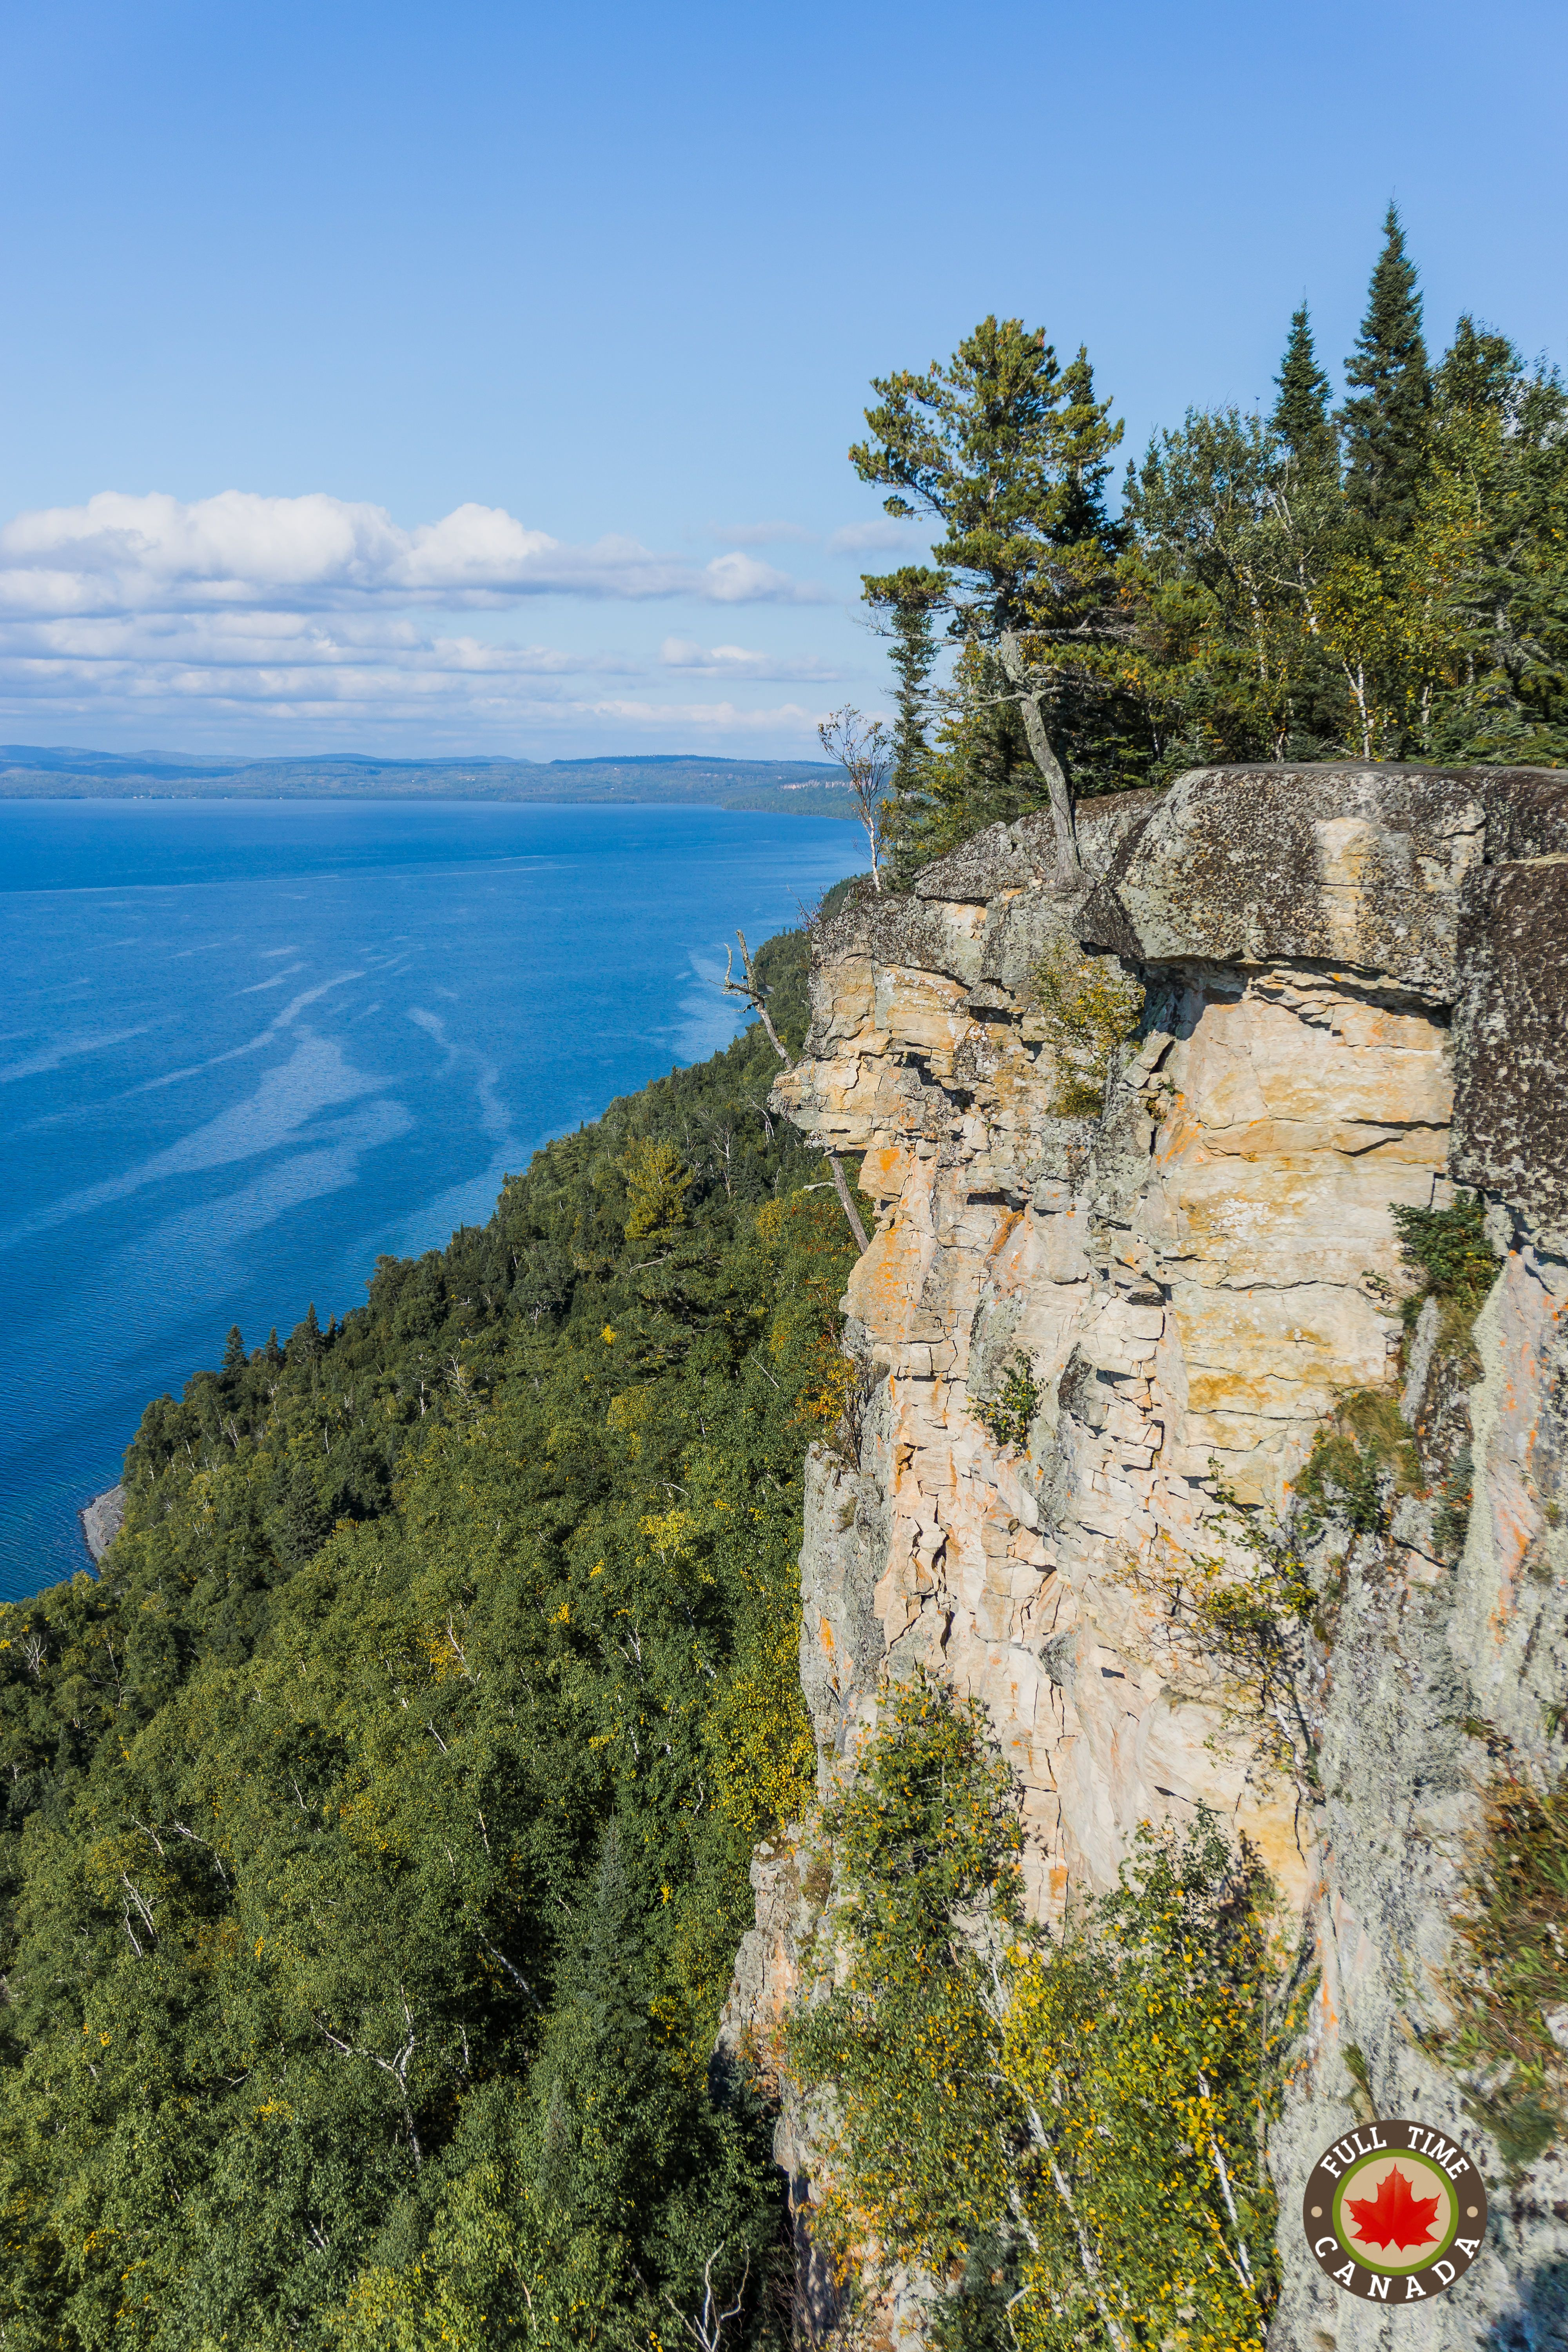 View from the Thunder Bay Lookout in Sleeping Giant